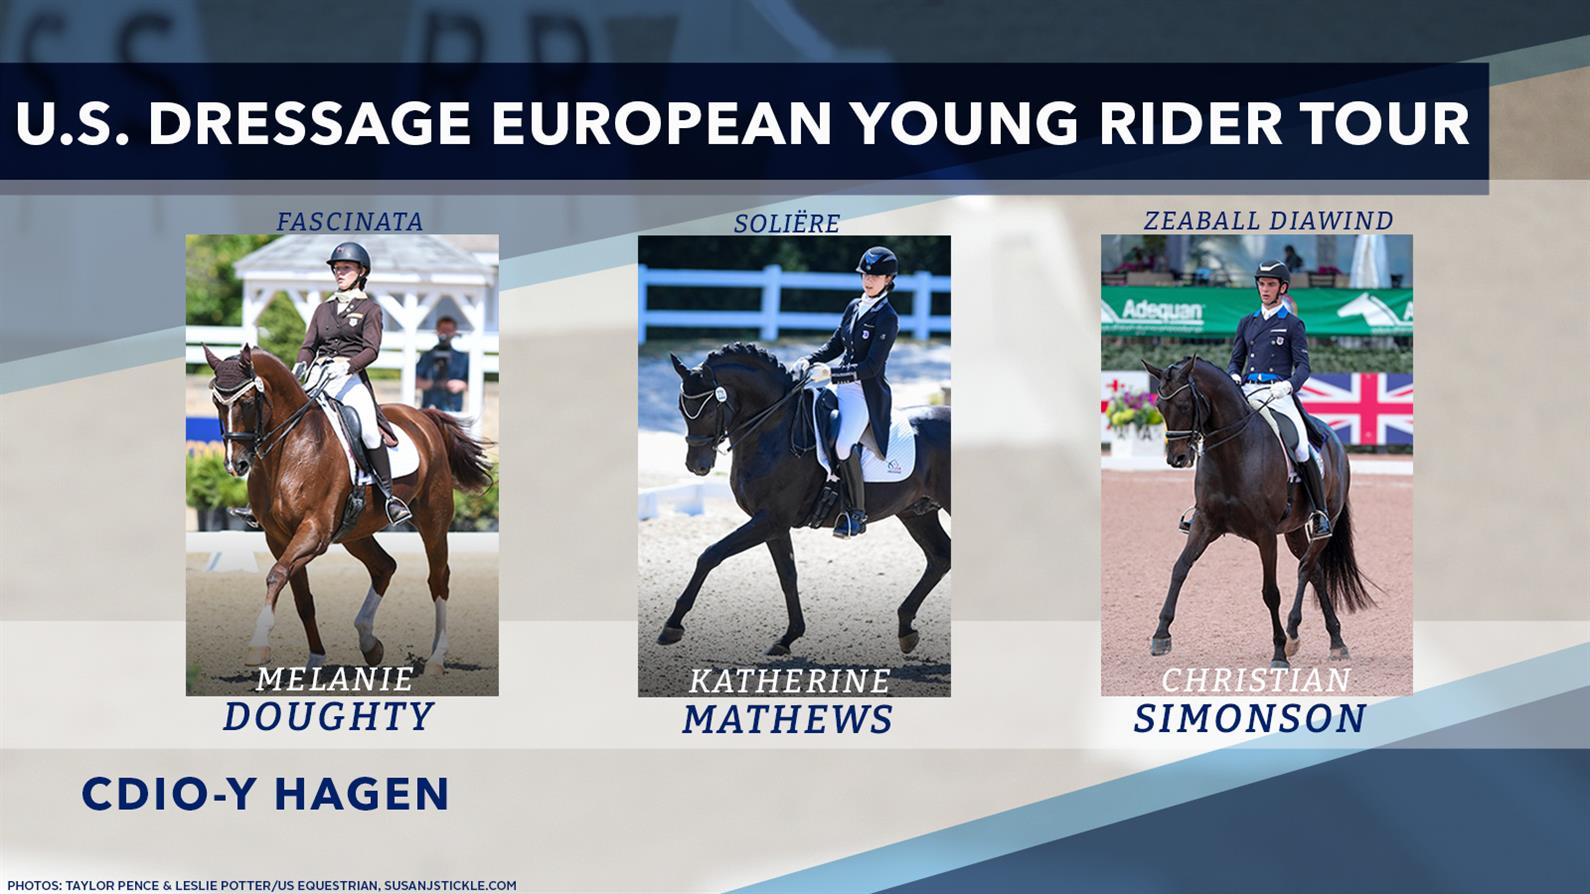 Team members for the 2021 US Dressage Young Rider European Tour